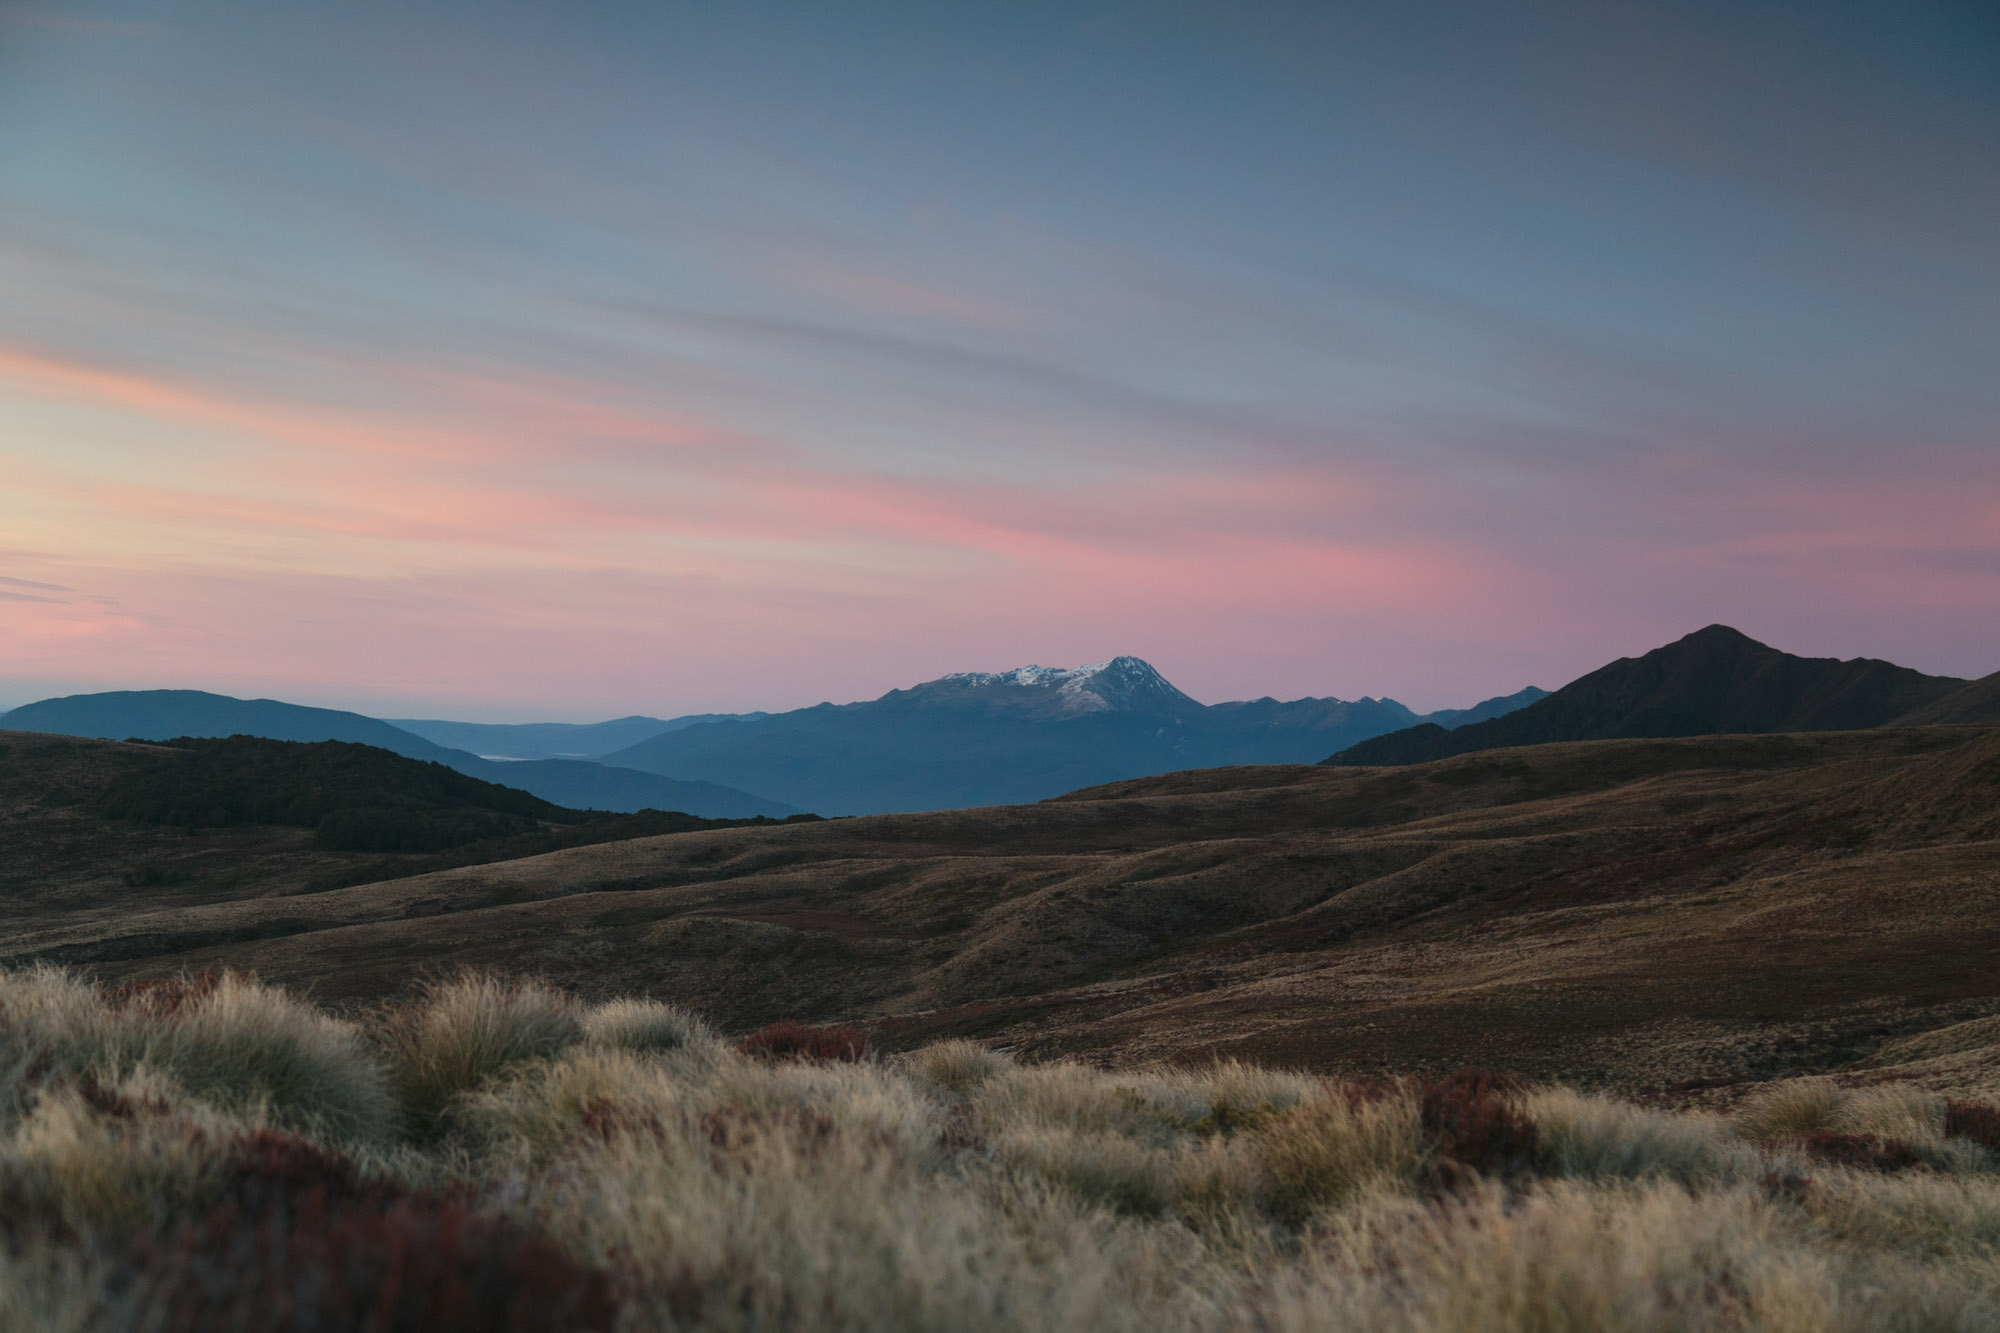 Another photo from sunrise from Luxmore Hut